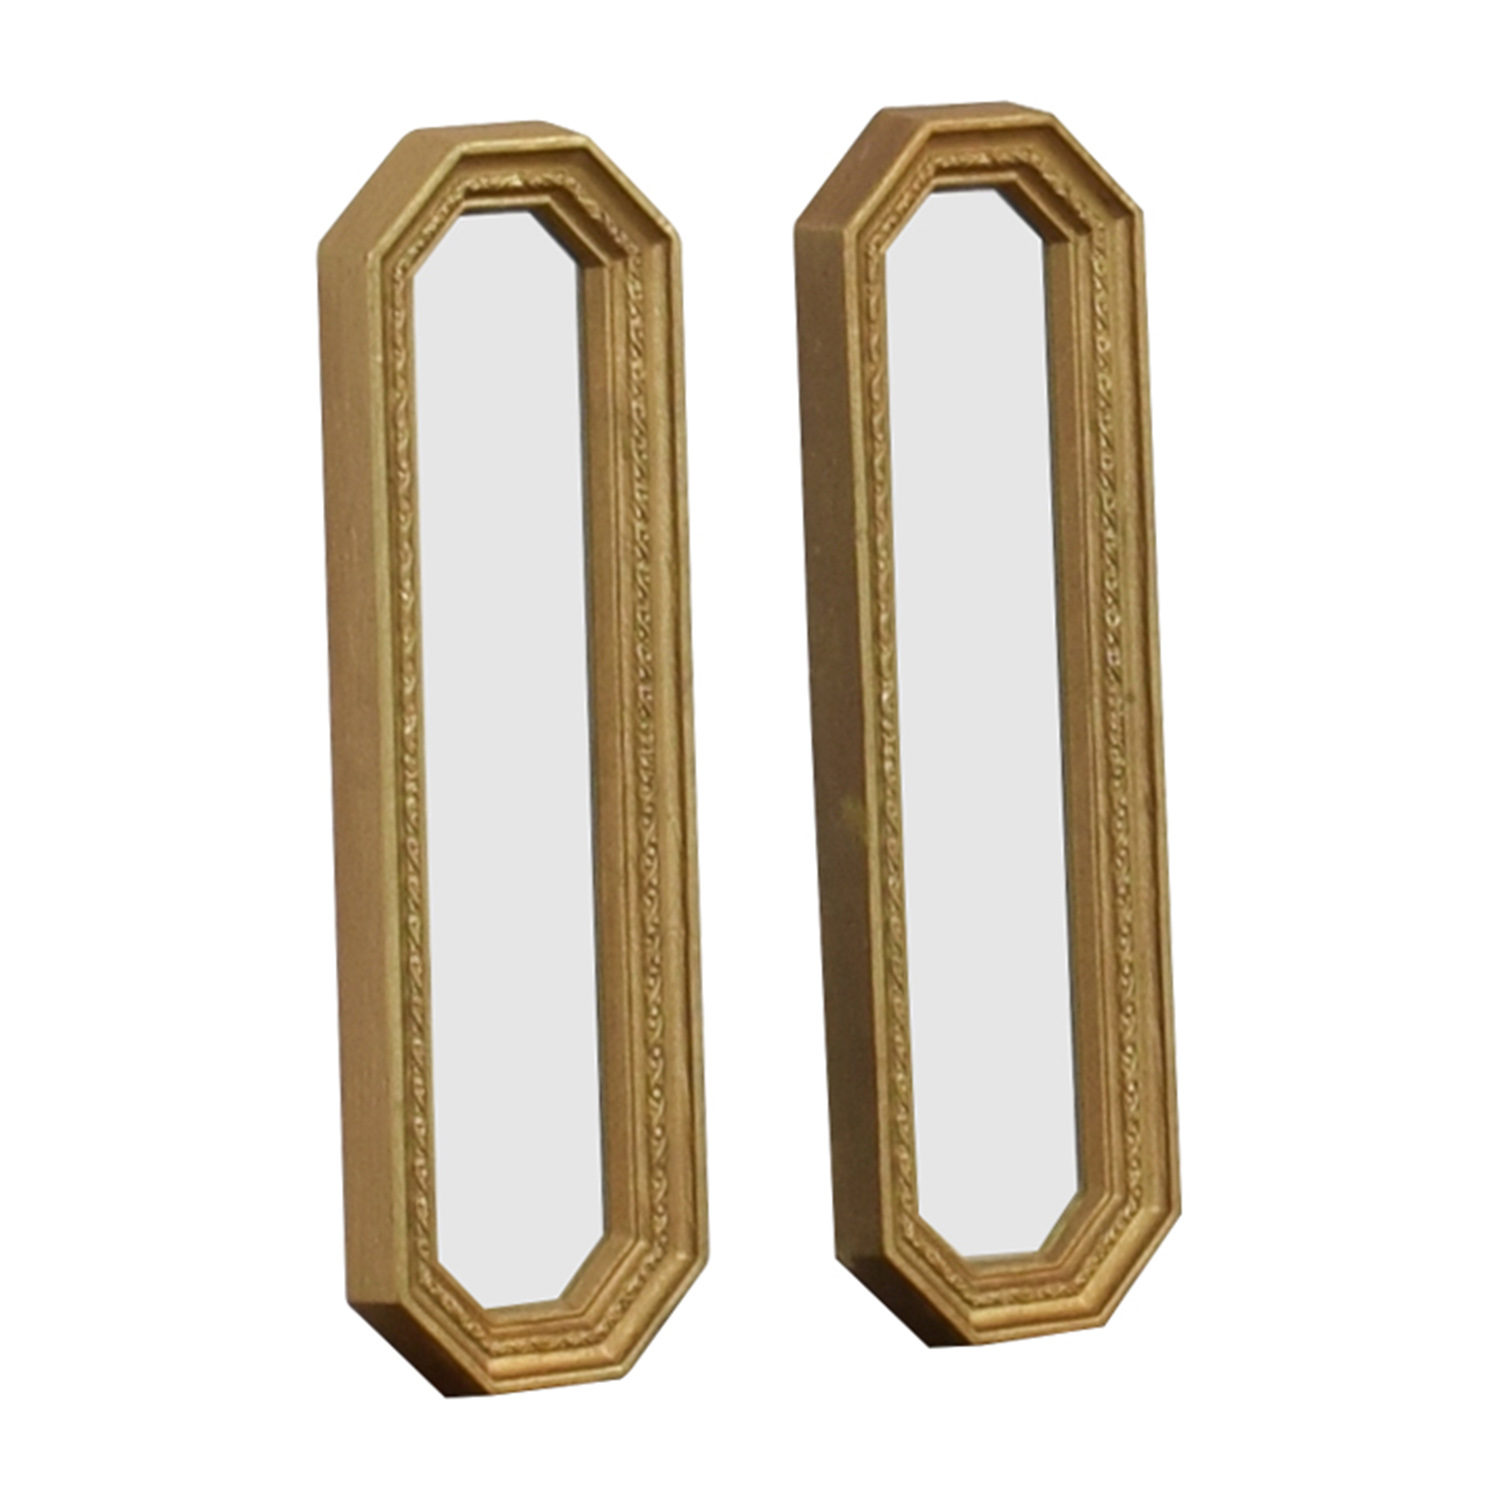 Gold Frame Oblong Mirrors for sale